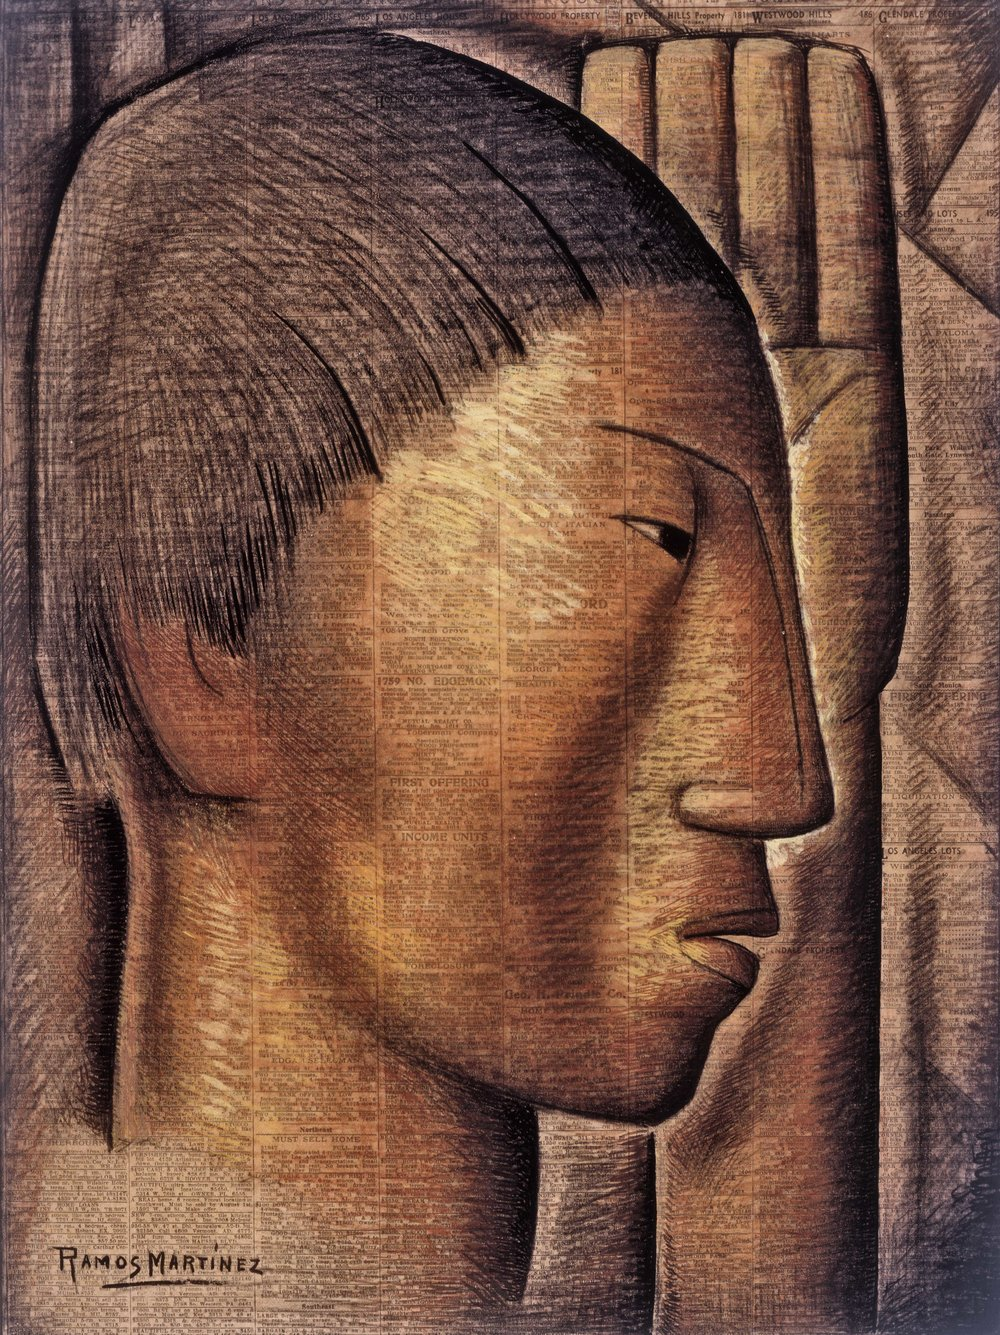 Perfil Indígena / Indian Profile  1935 Conté crayon, charcoal and tempera on newsprint / crayon Conté, carbón y temple sobre papel periódico ( Los Angeles Times , July 28, 1935) 21.1 x 16 inches; 53.7 x 40.6 centímetros Private collection